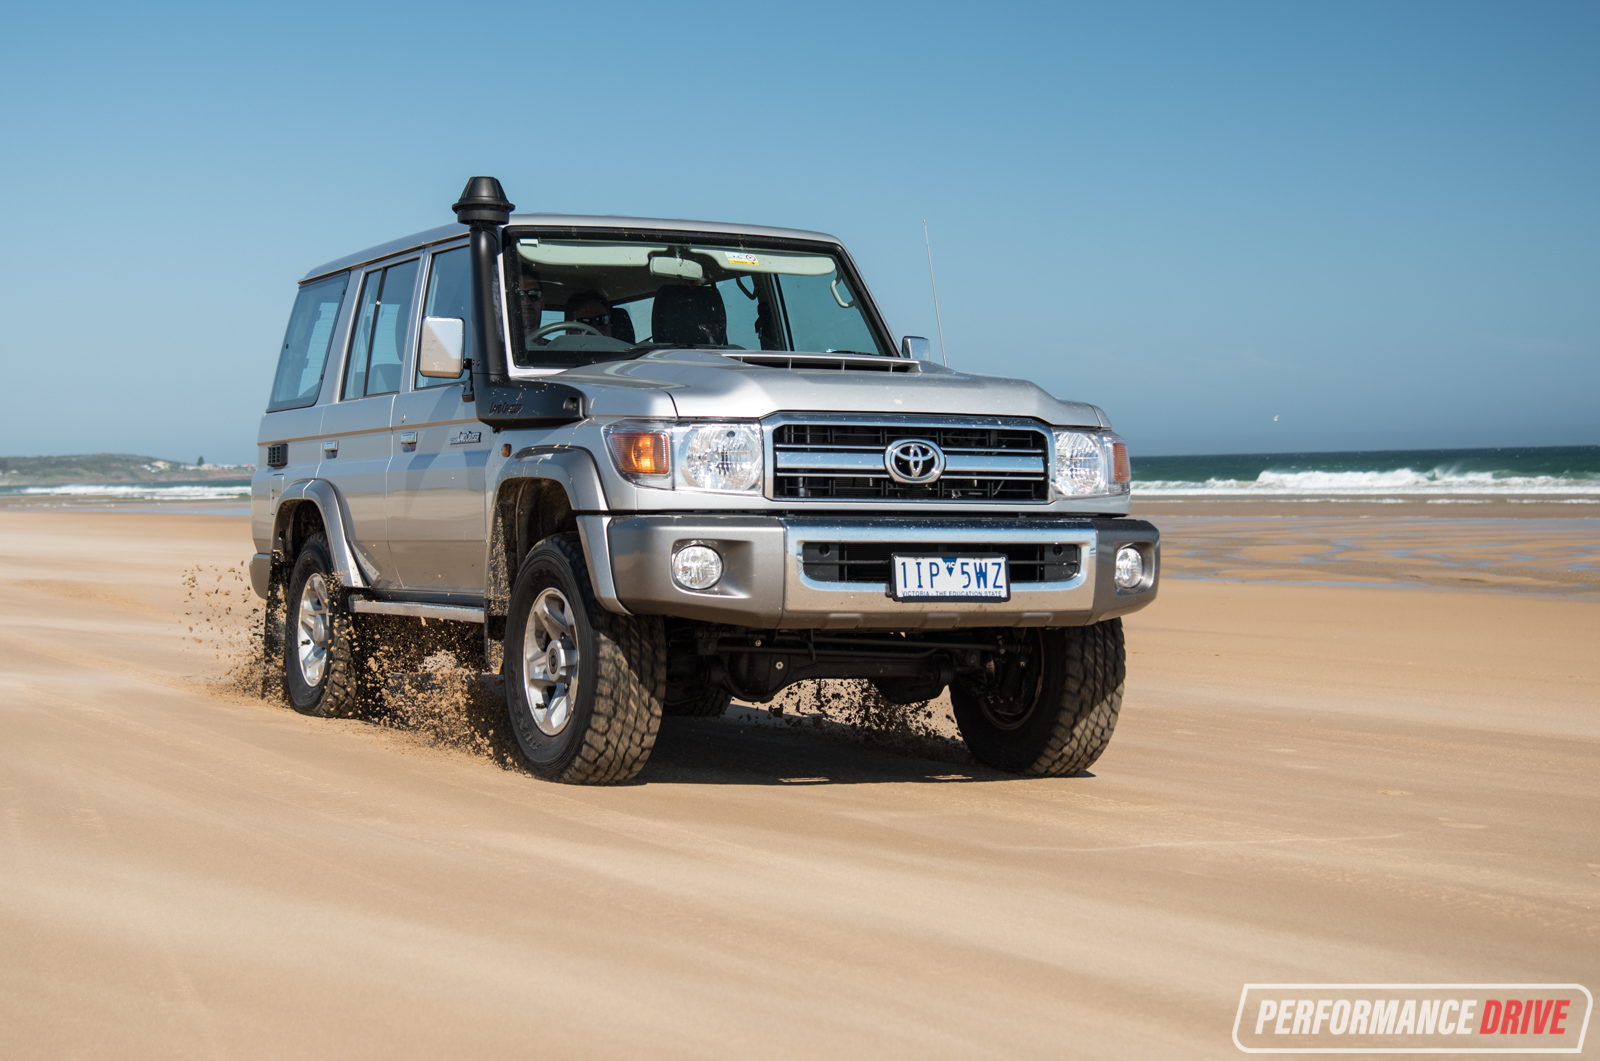 Land Cruiser 70 Series Off Road >> 2017 Toyota LandCruiser 70 Series GXL wagon review (video) | PerformanceDrive